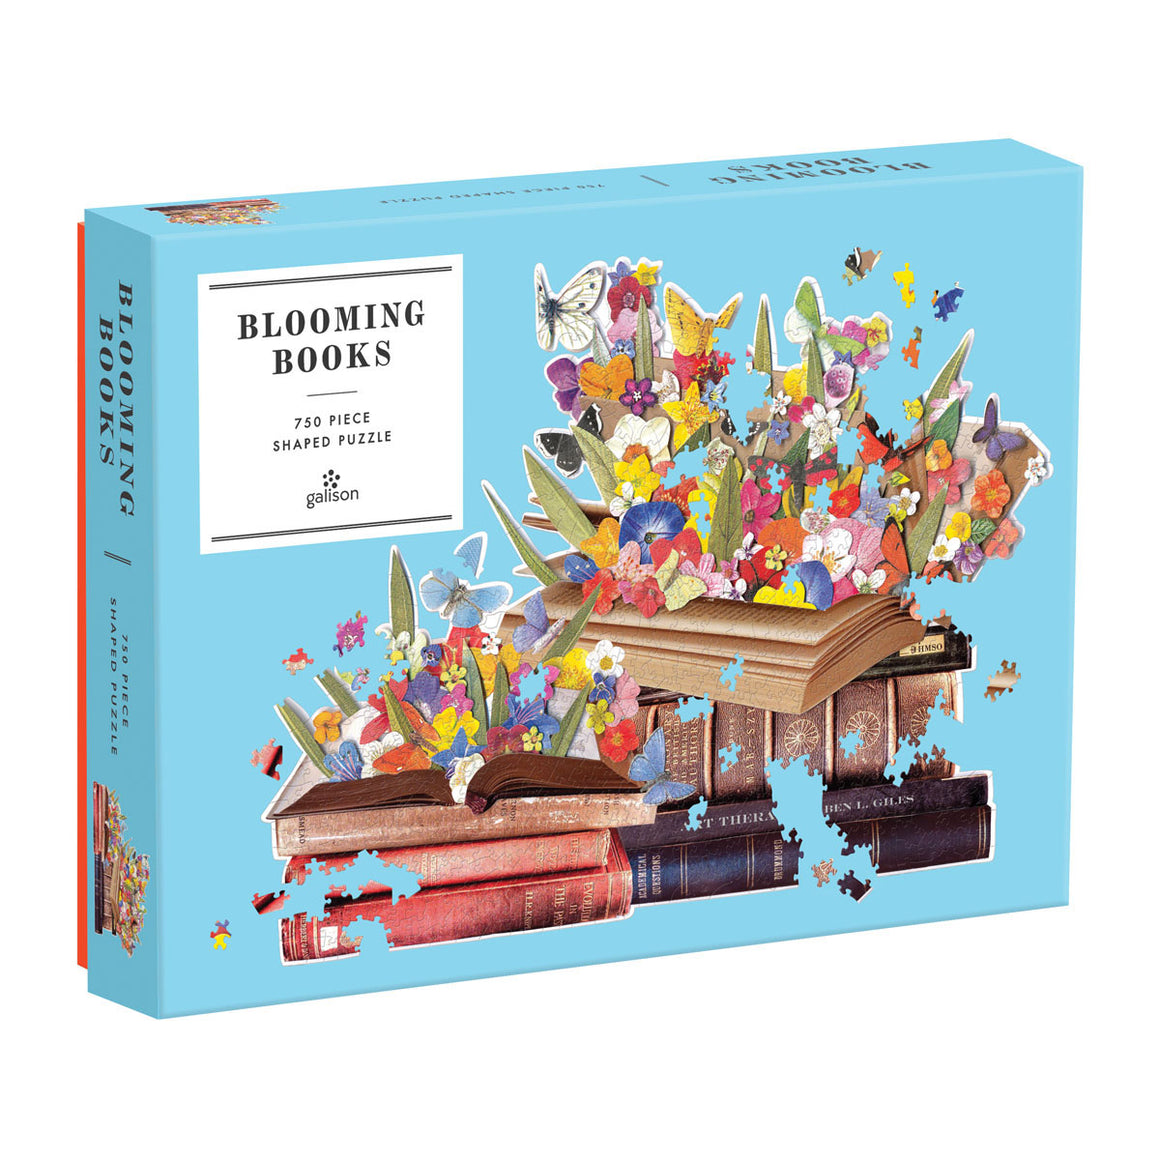 Blooming Books Puzzle - 750 piece